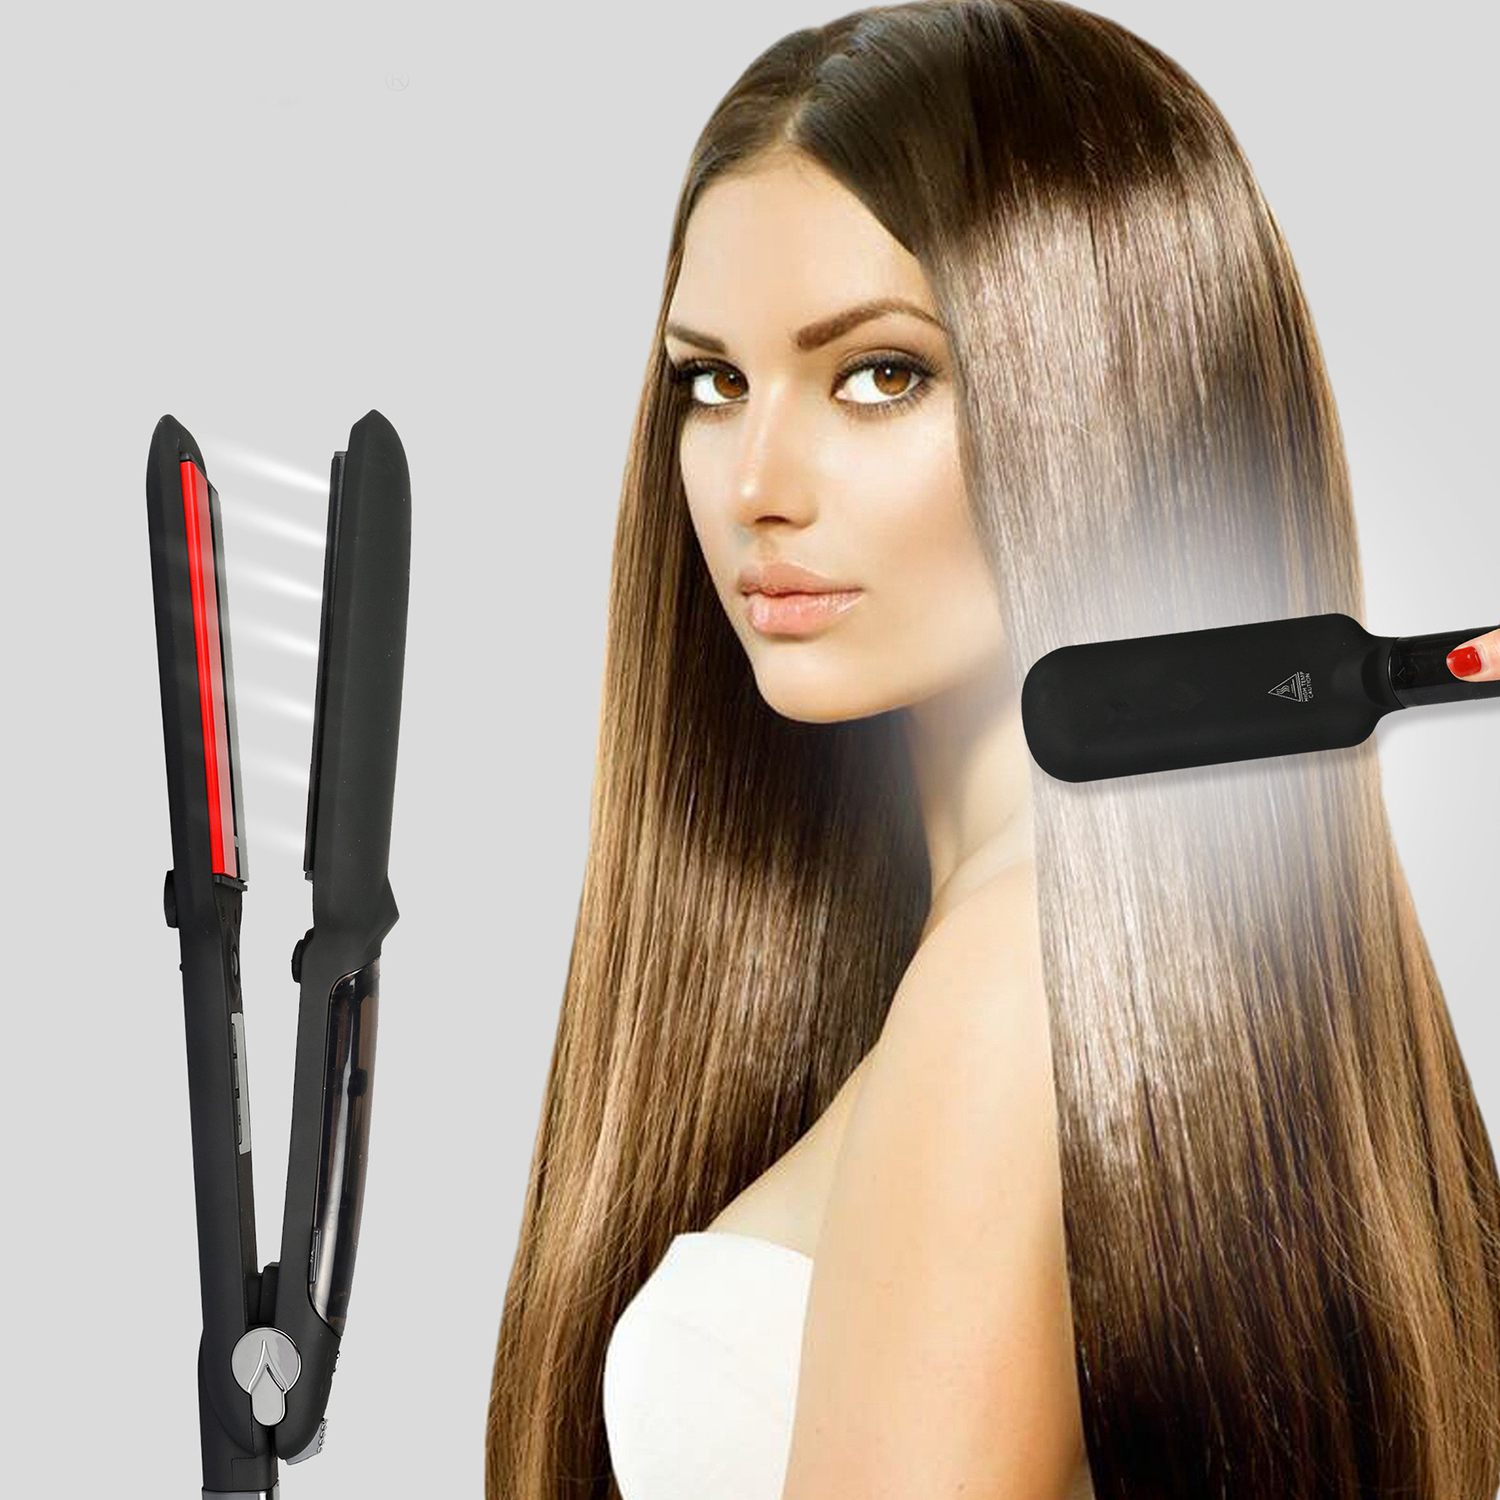 EAS Professional Steam Hair Straightener Ceramic Vapor Infrared Heating Flat Iron Salon 2 inch Styling Tool Black EU Plug in Curling Irons from Home Appliances